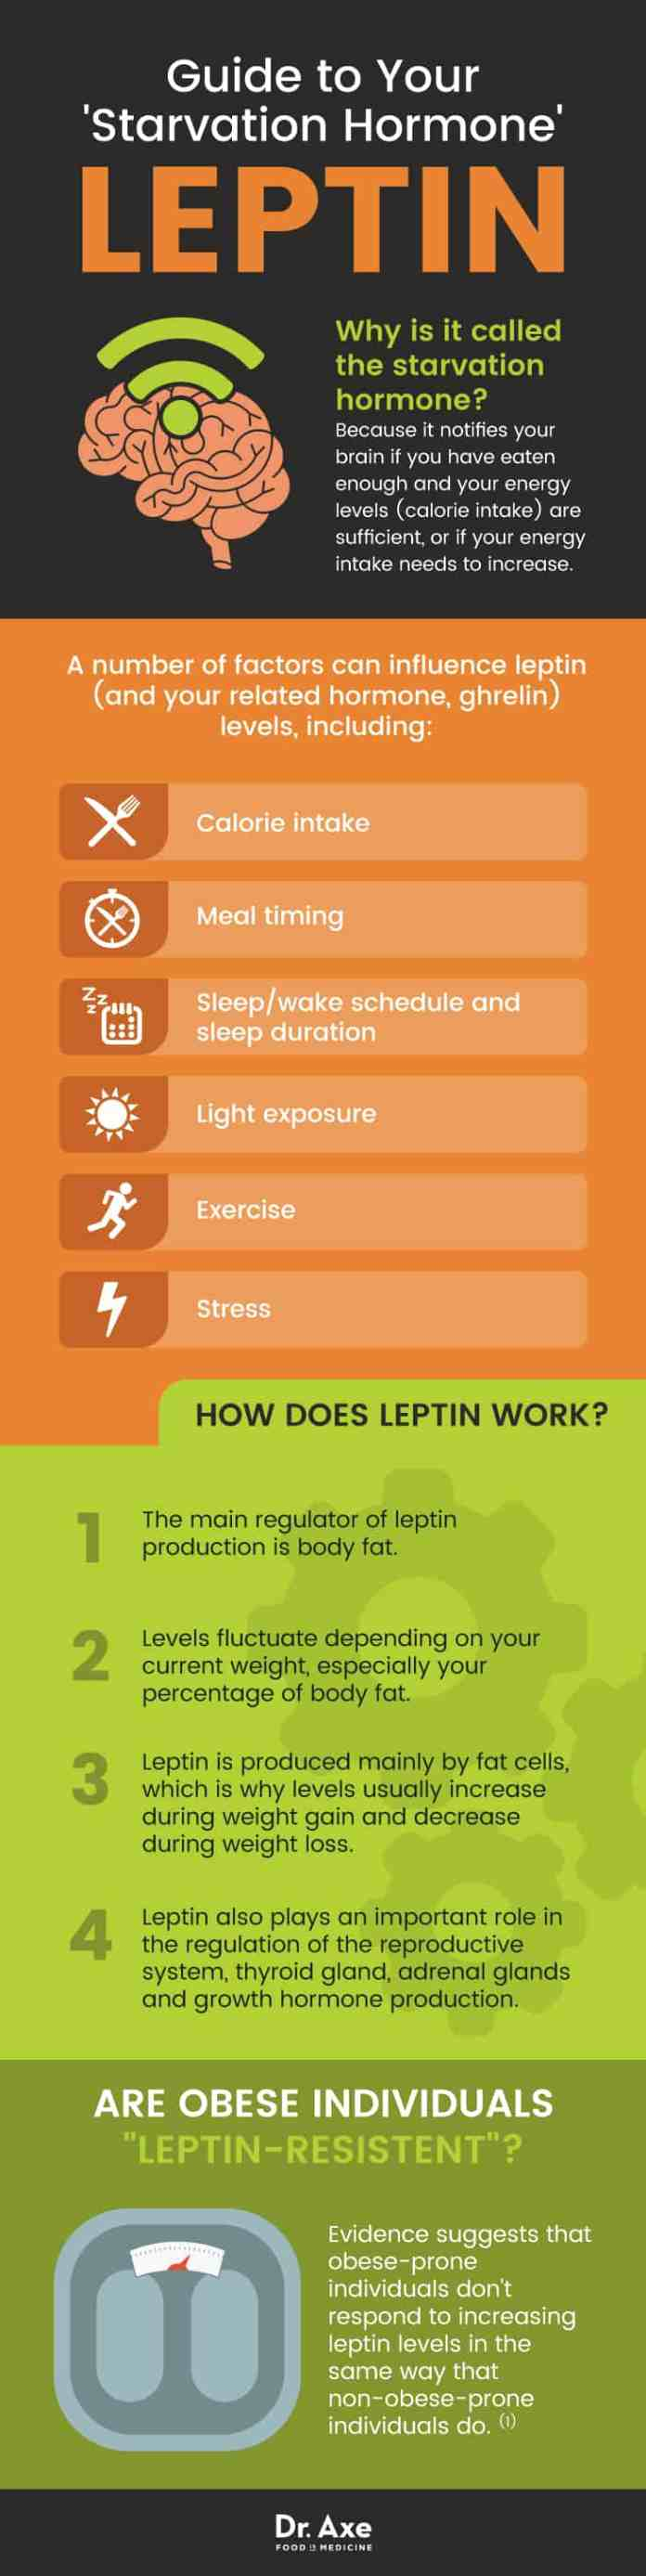 Leptin guide - Dr. Axe